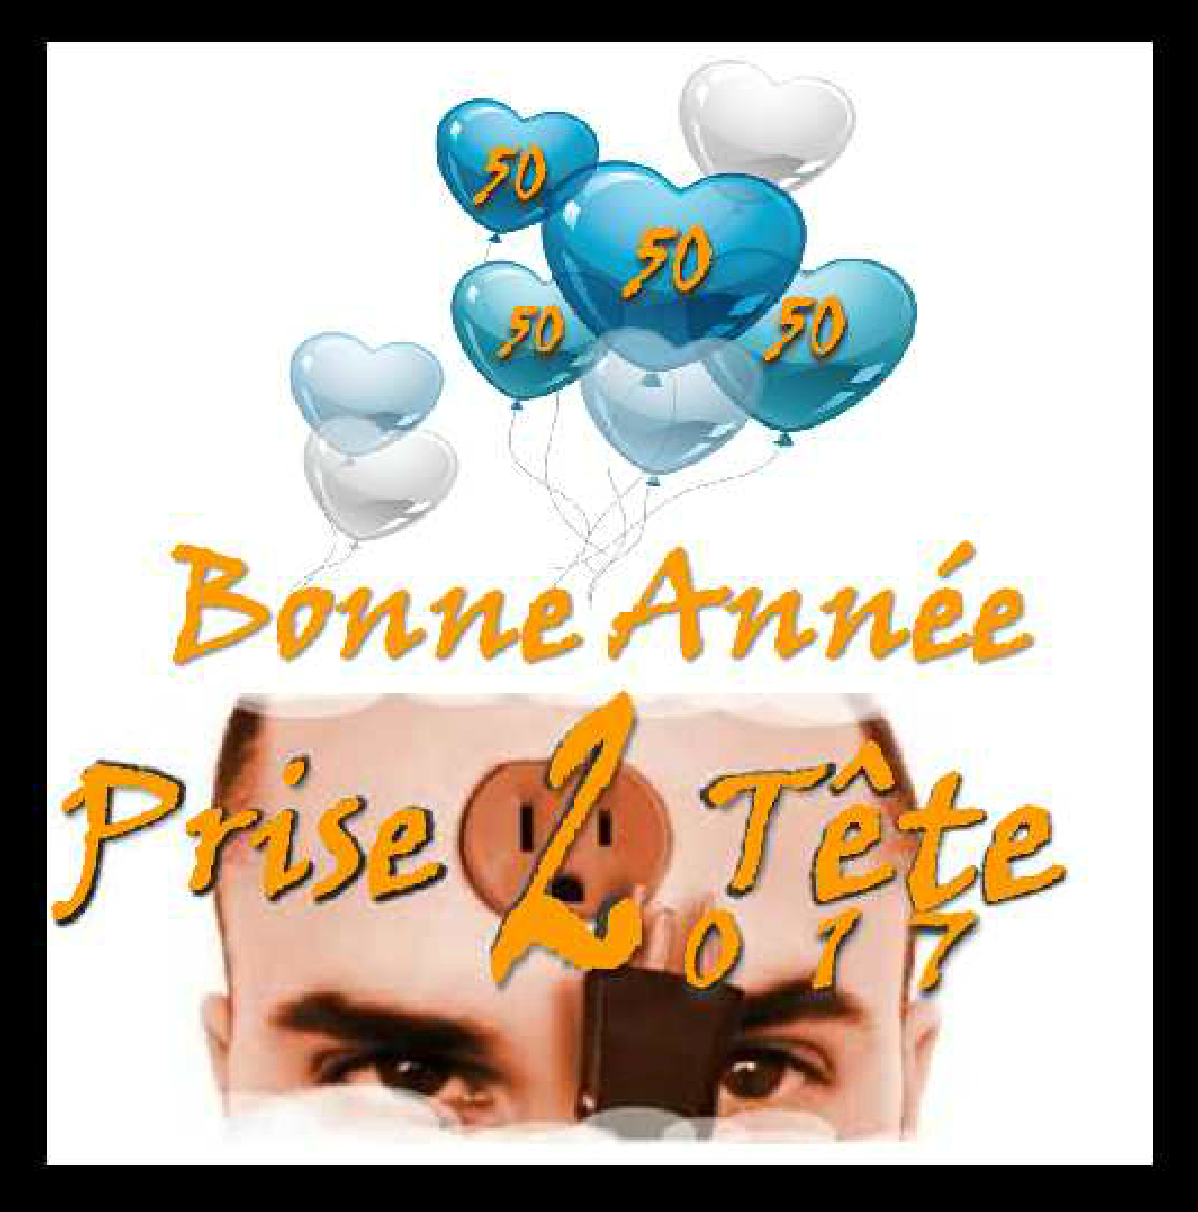 http://www.prise2tete.fr/upload/Franky1103-Puzzle2.png